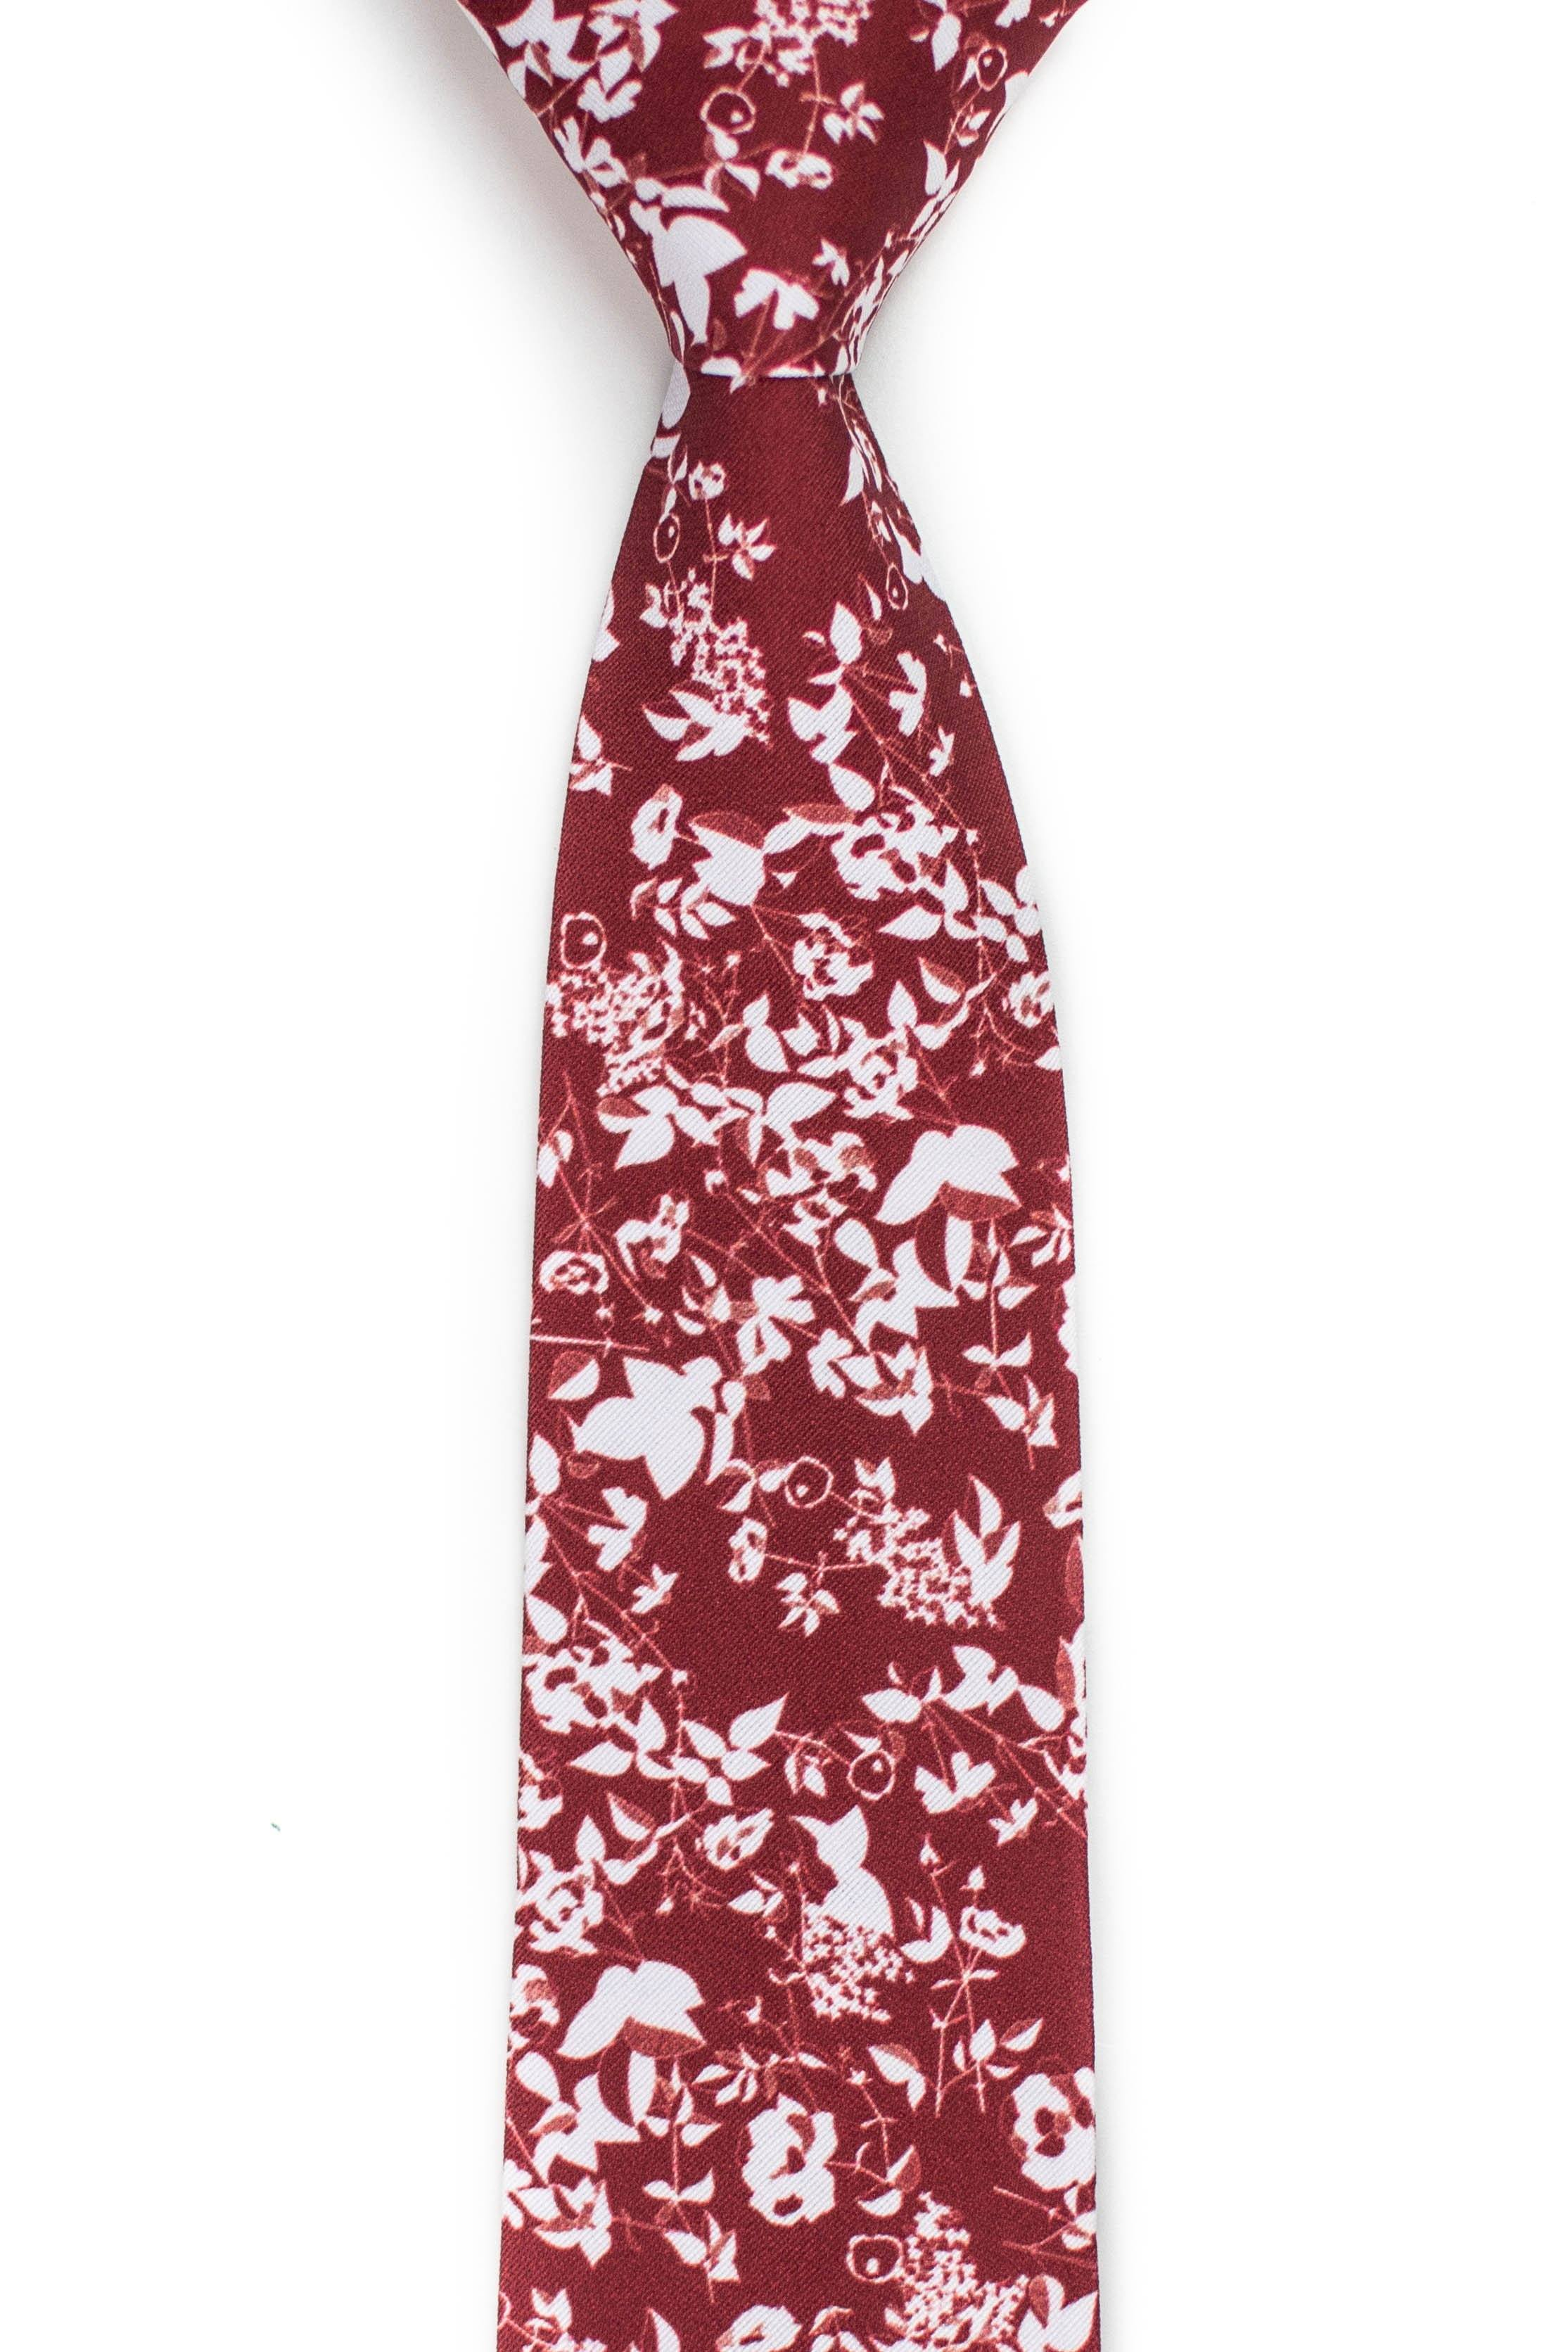 Front view of crimson red floral silhouette tie